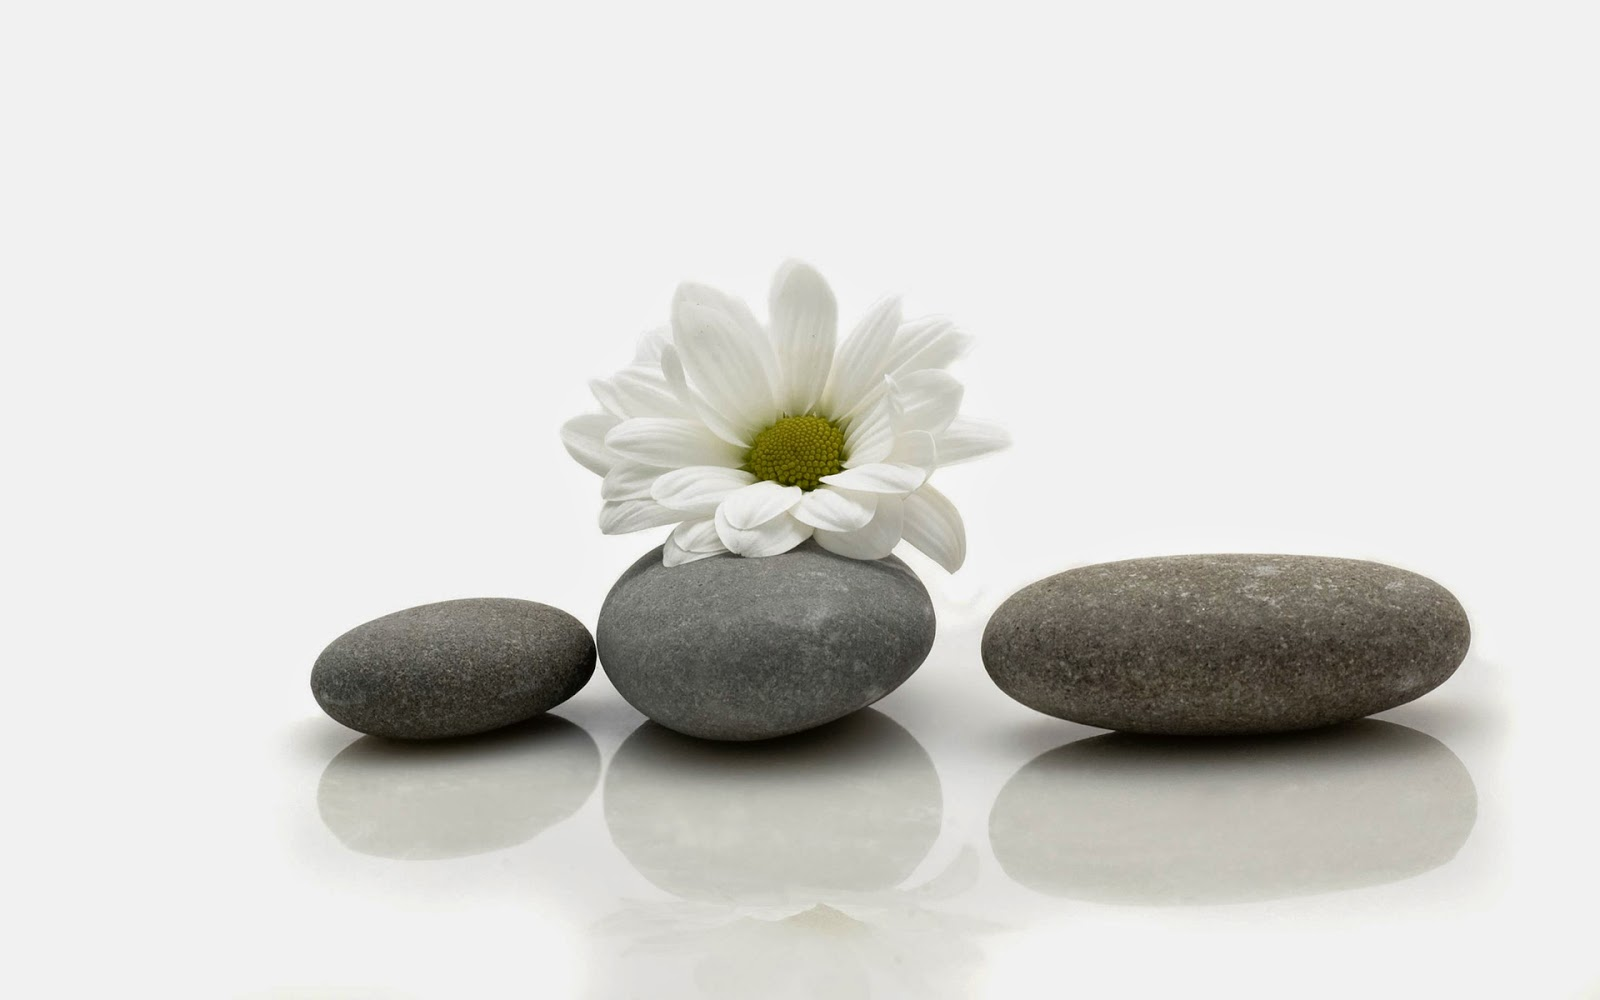 Zen-Wallpaper-with-white-background-black-stone-flower-1920x1200.jpg